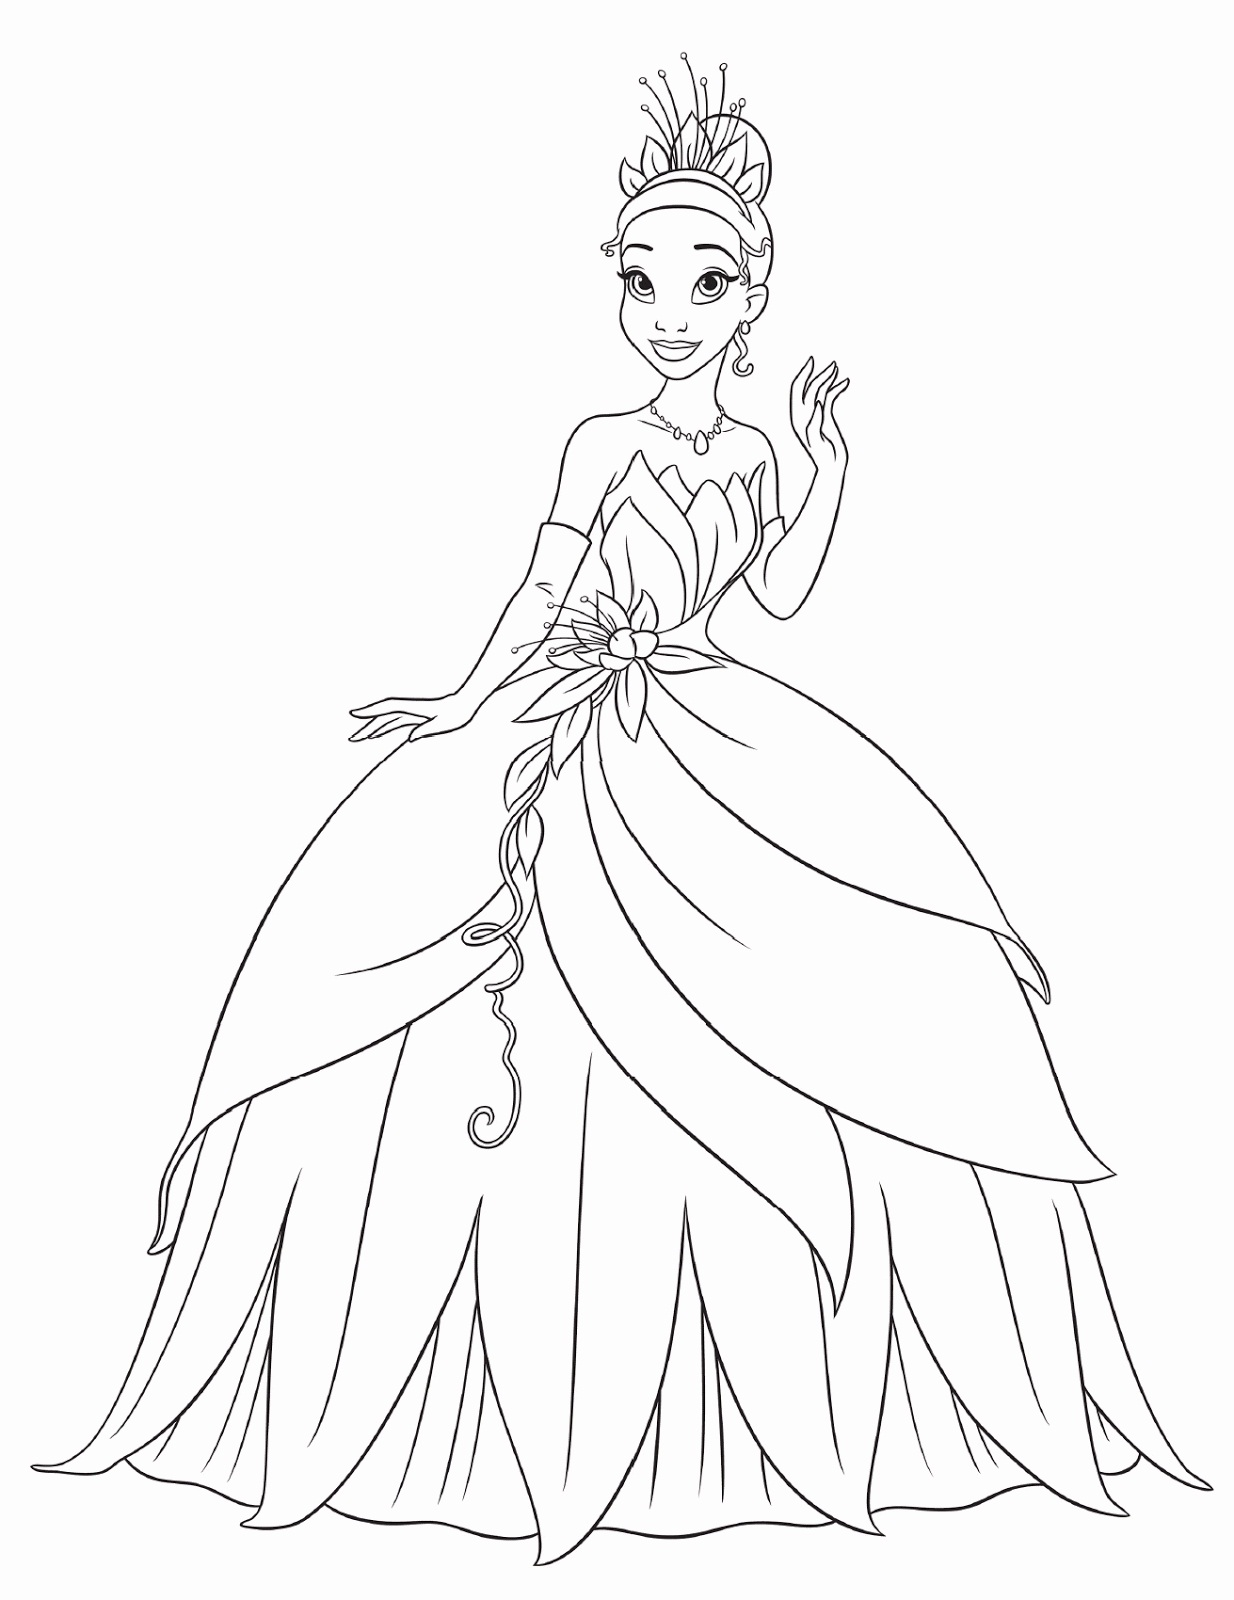 Free Printable Princess Tiana Coloring Pages For Kids Free Printable Princess Coloring Pages